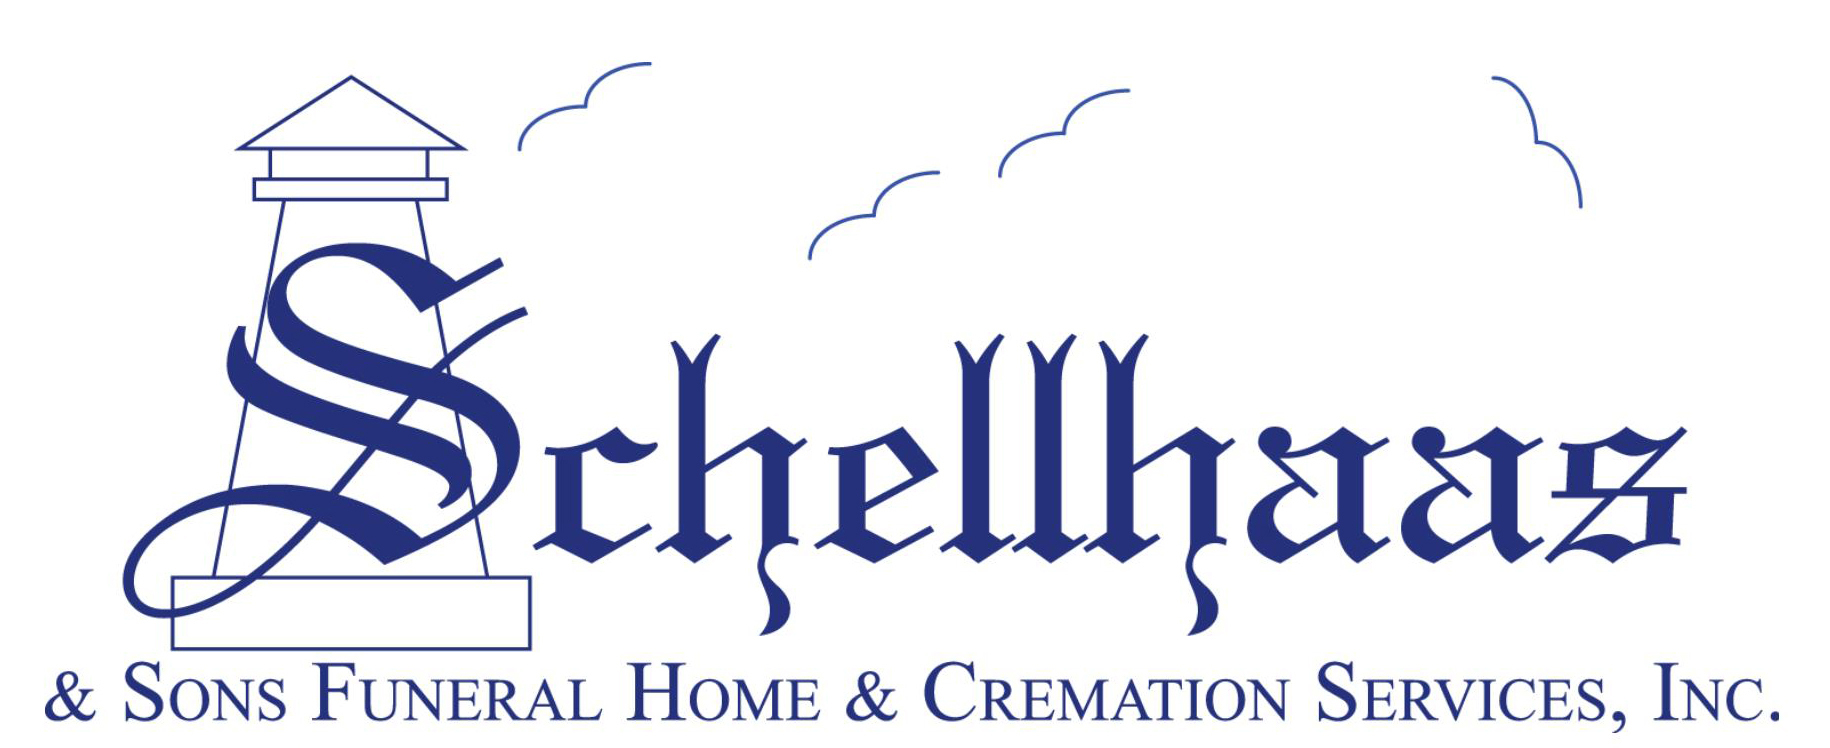 Schellhaas Funeral Home